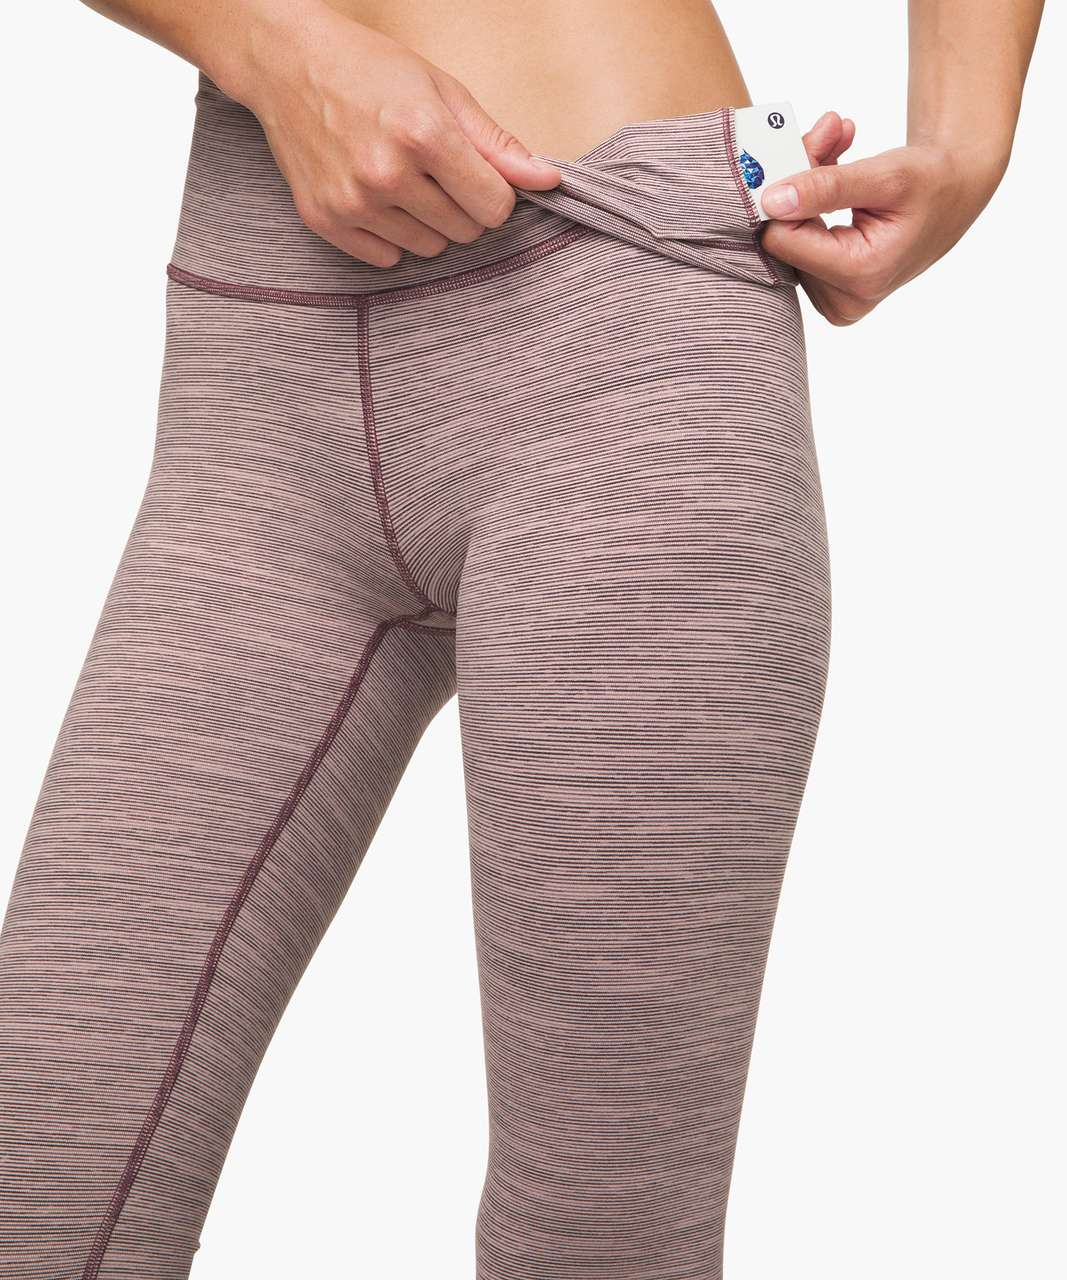 """Lululemon Wunder Under High-Rise Tight 25"""" - Wee Are From Space Frosted Mulberry Black Currant"""